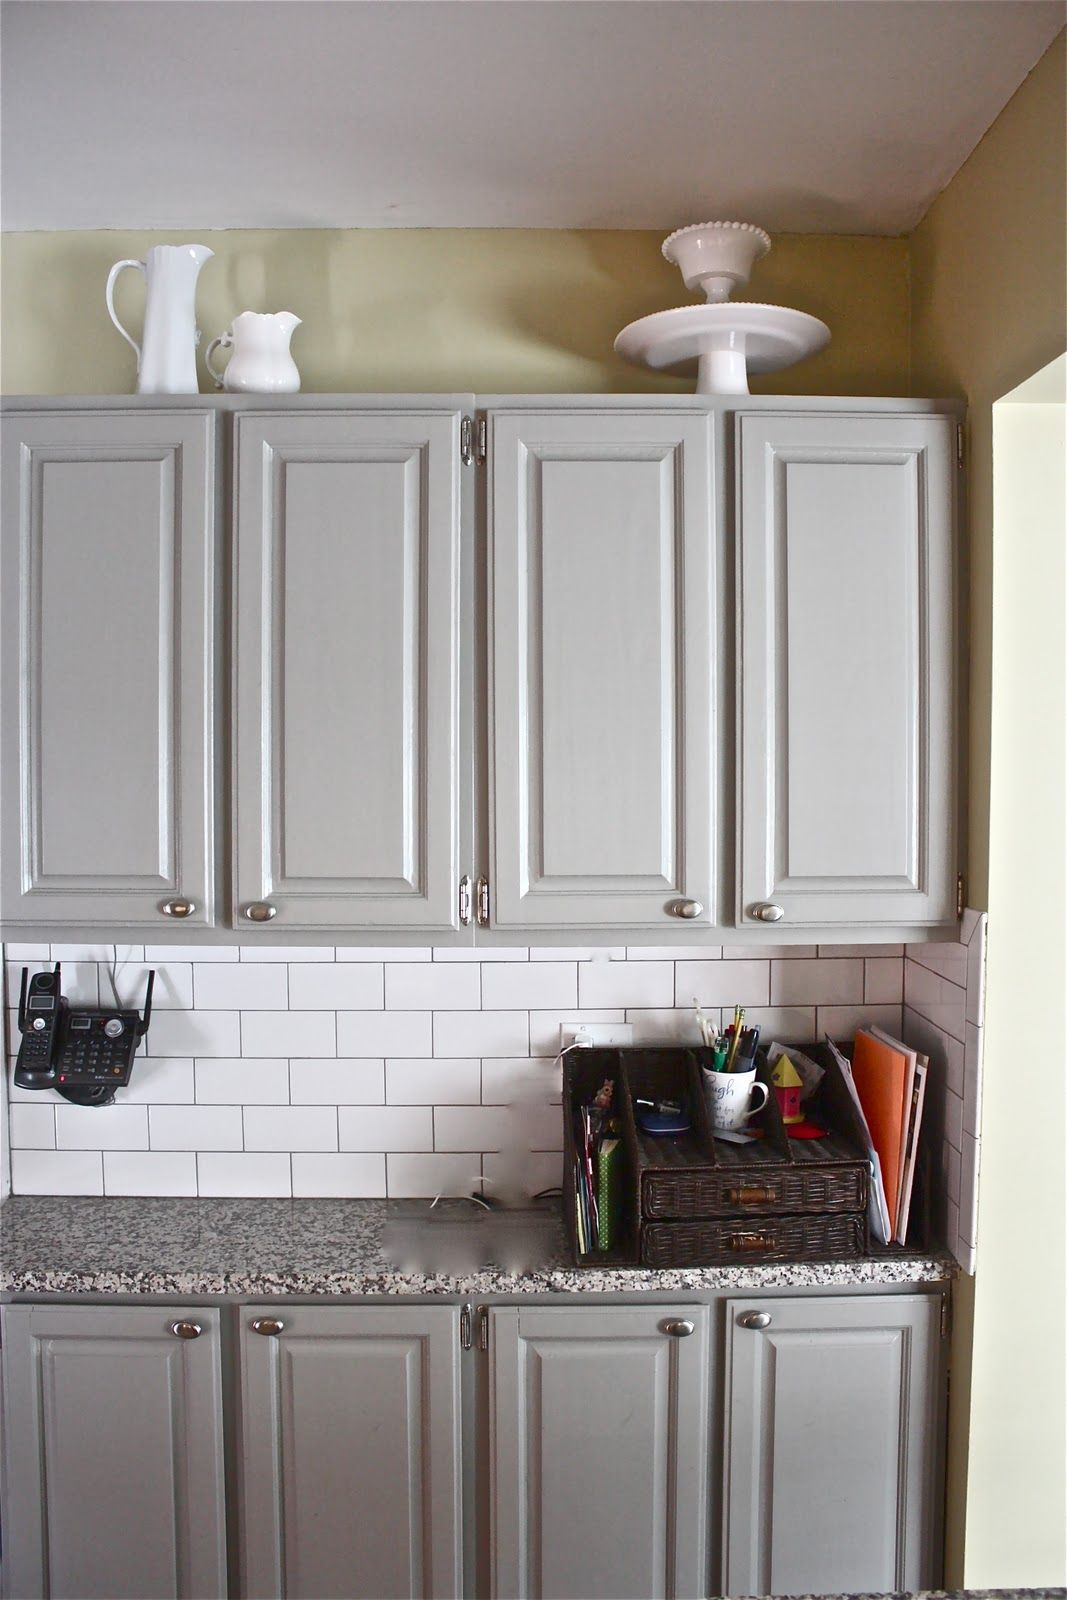 Grey Painted Kitchen Walls Painted Cabinets Bedford Gray By Martha Stewart White